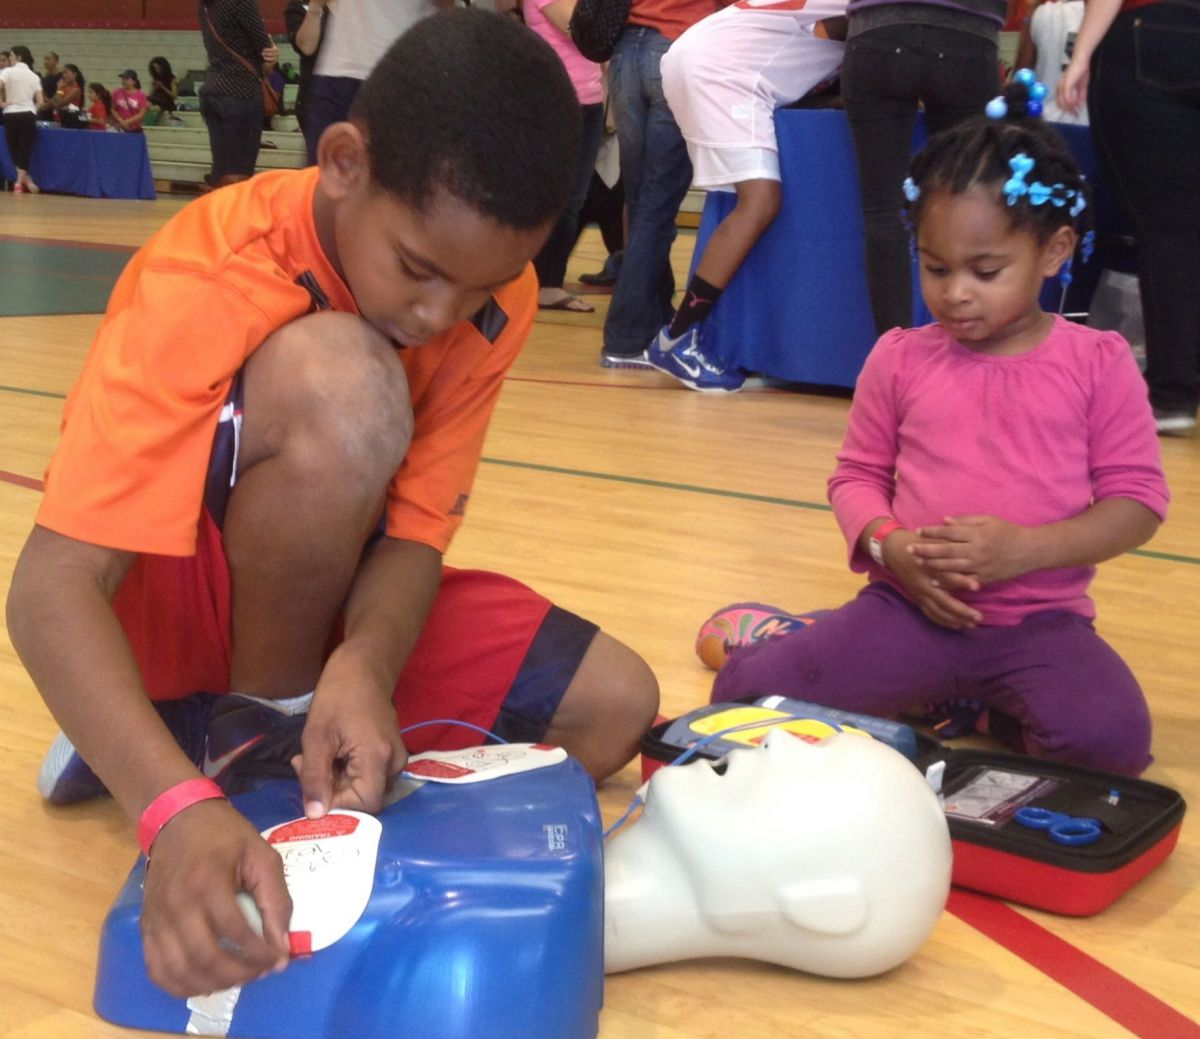 Youth learning how to use AED